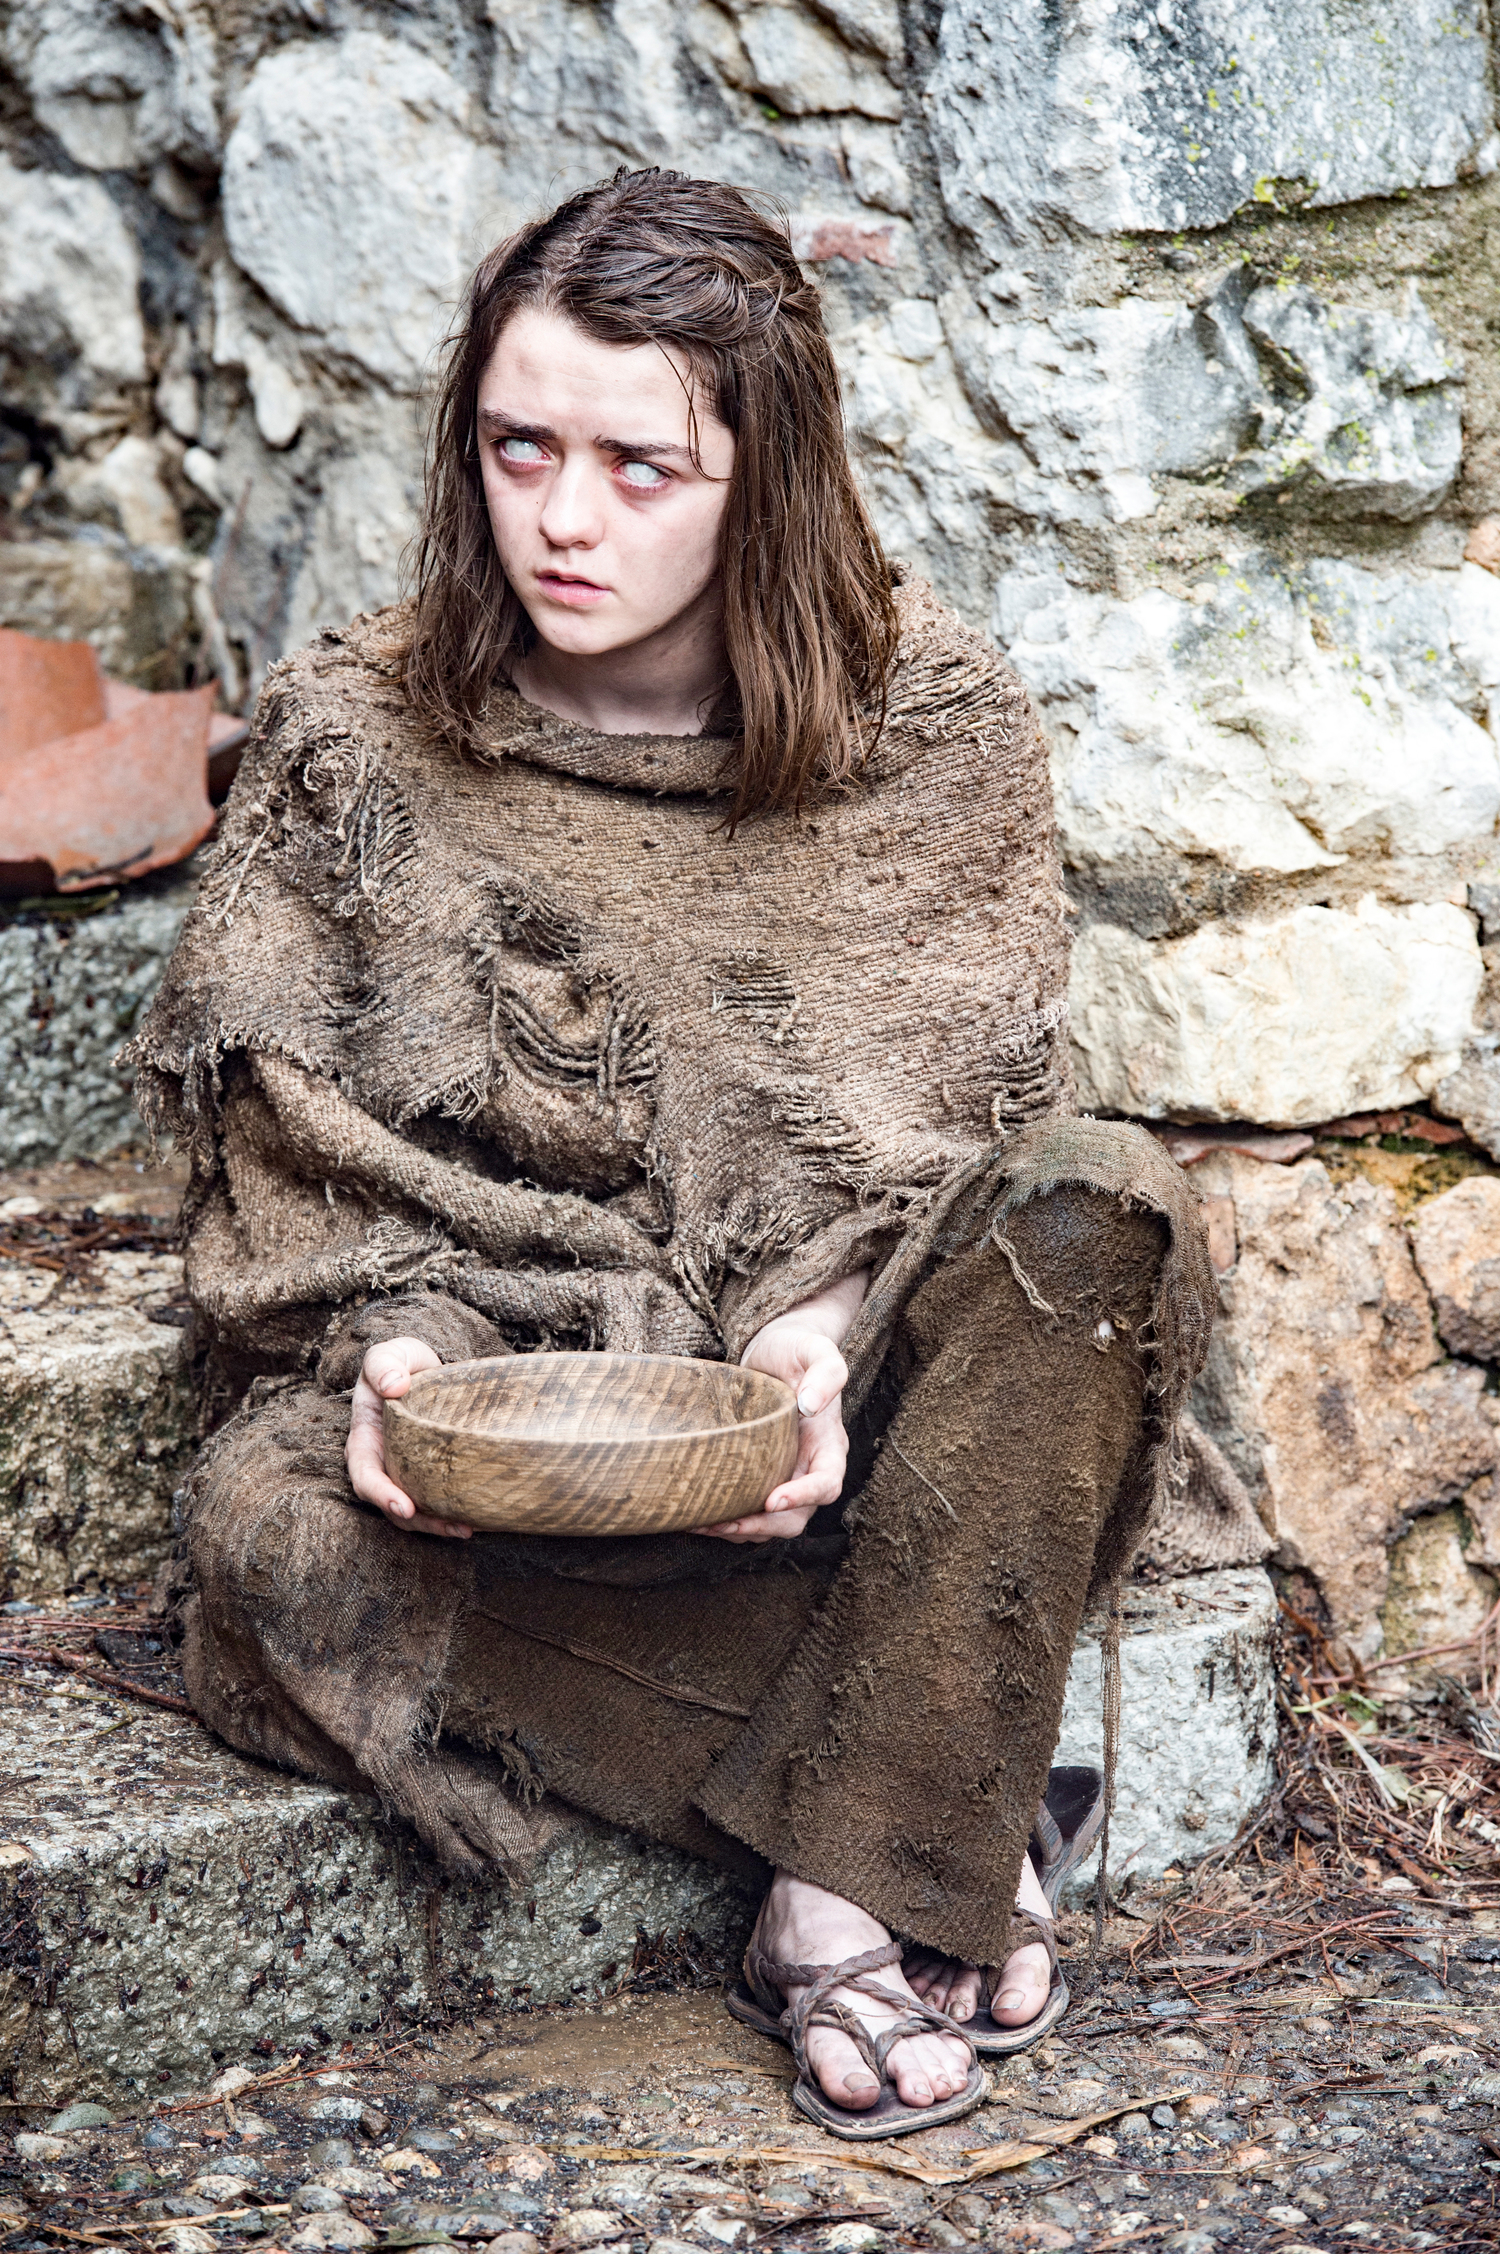 game of thrones season 6 photos, arya stark, blind